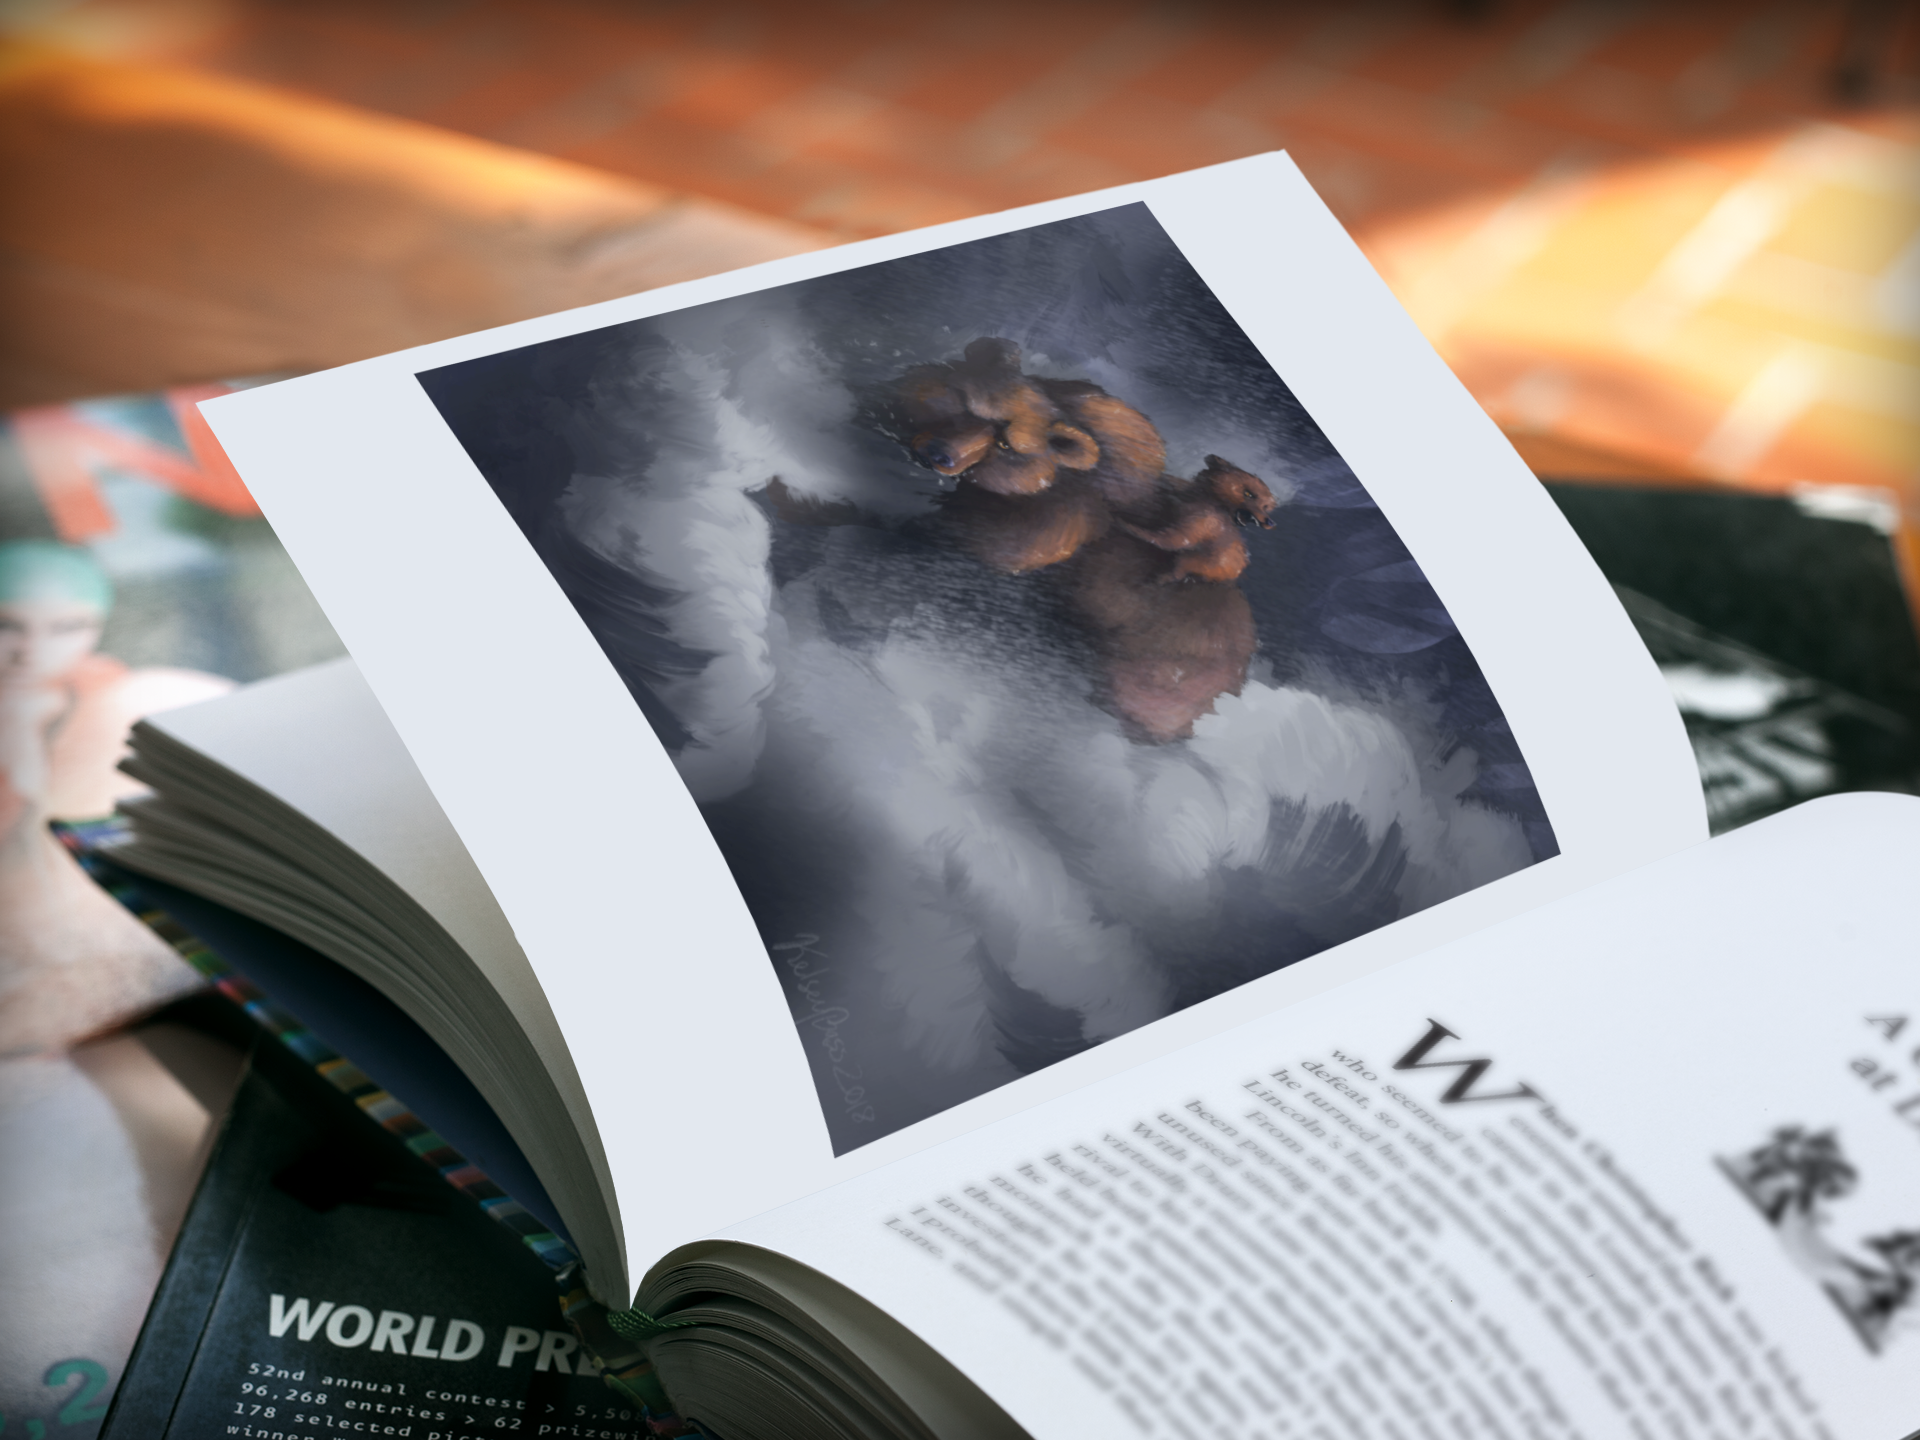 mockup-featuring-a-book-lying-open-over-a-stack-of-magazines-a5909.png